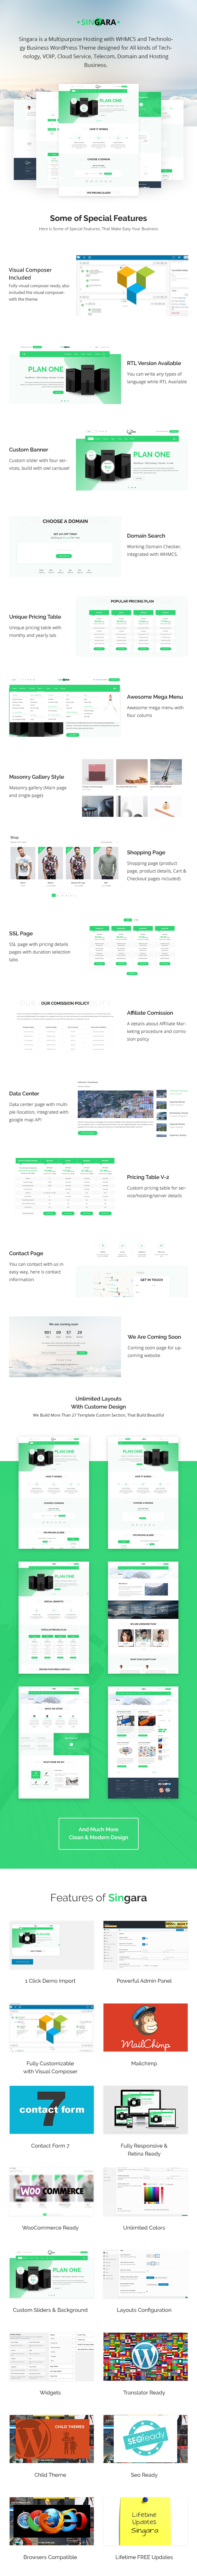 Singara - Multipurpose Hosting with WHMCS WordPress Themes